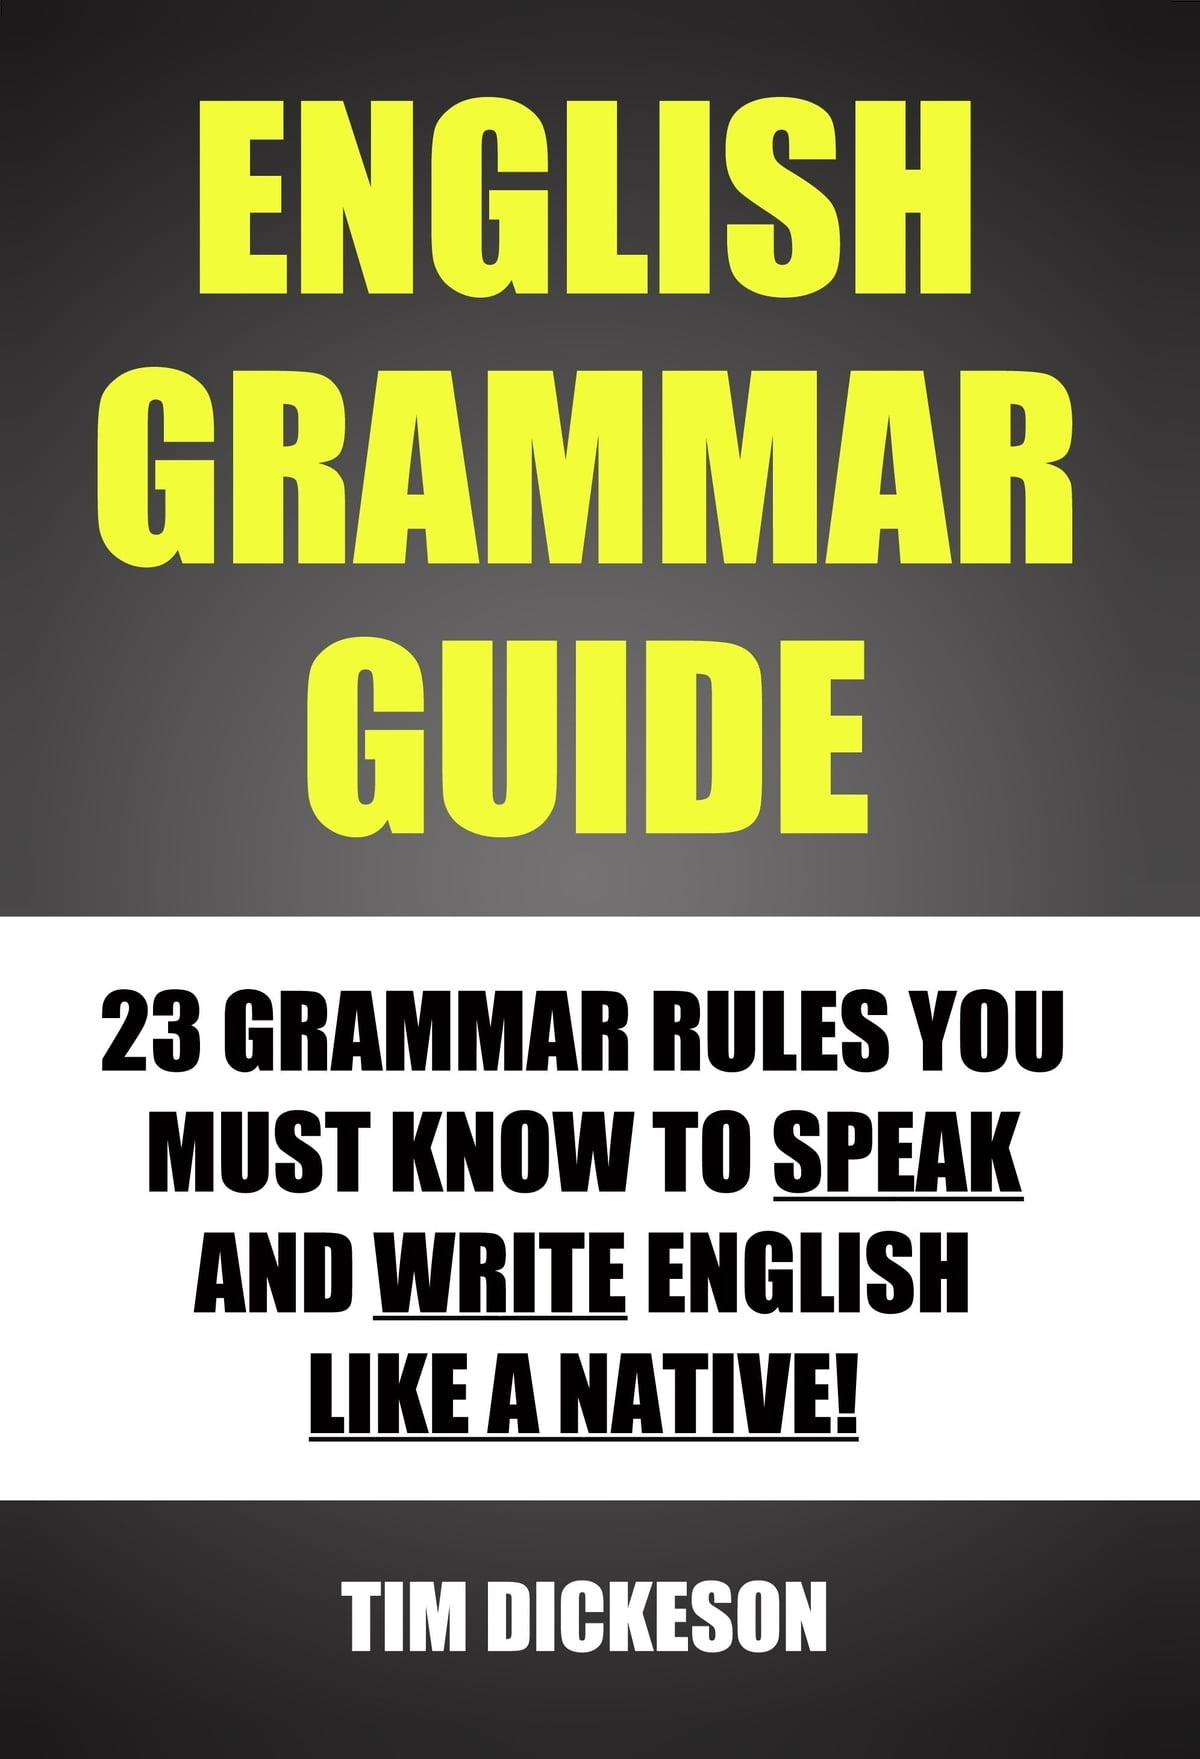 English Grammar Guide: 23 Grammar Rules You Must Know To Speak and Write  English Like A Native ebook by Timothy Dickeson - Rakuten Kobo